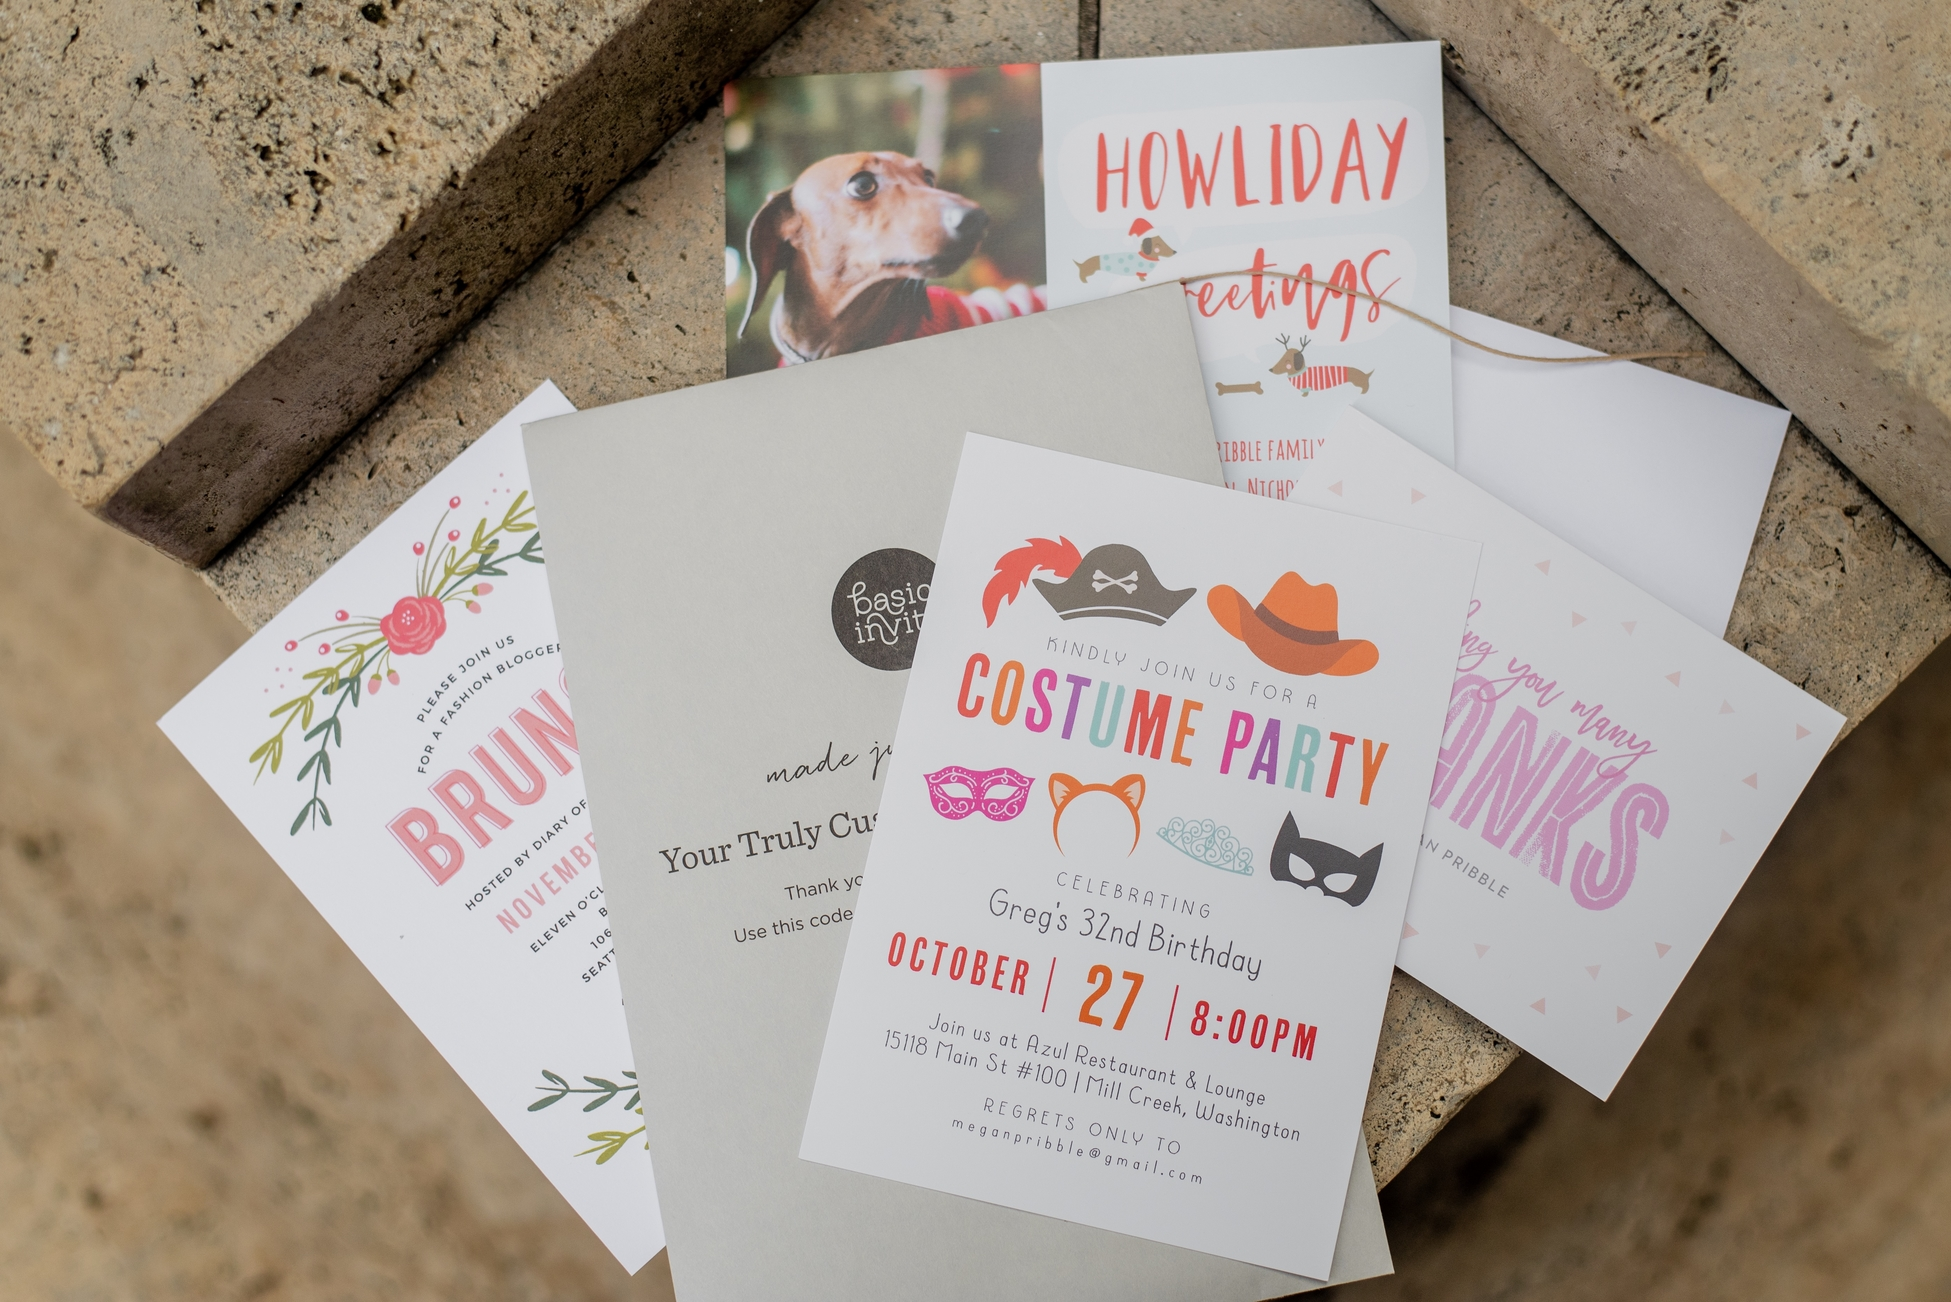 basic invite, greeting cards